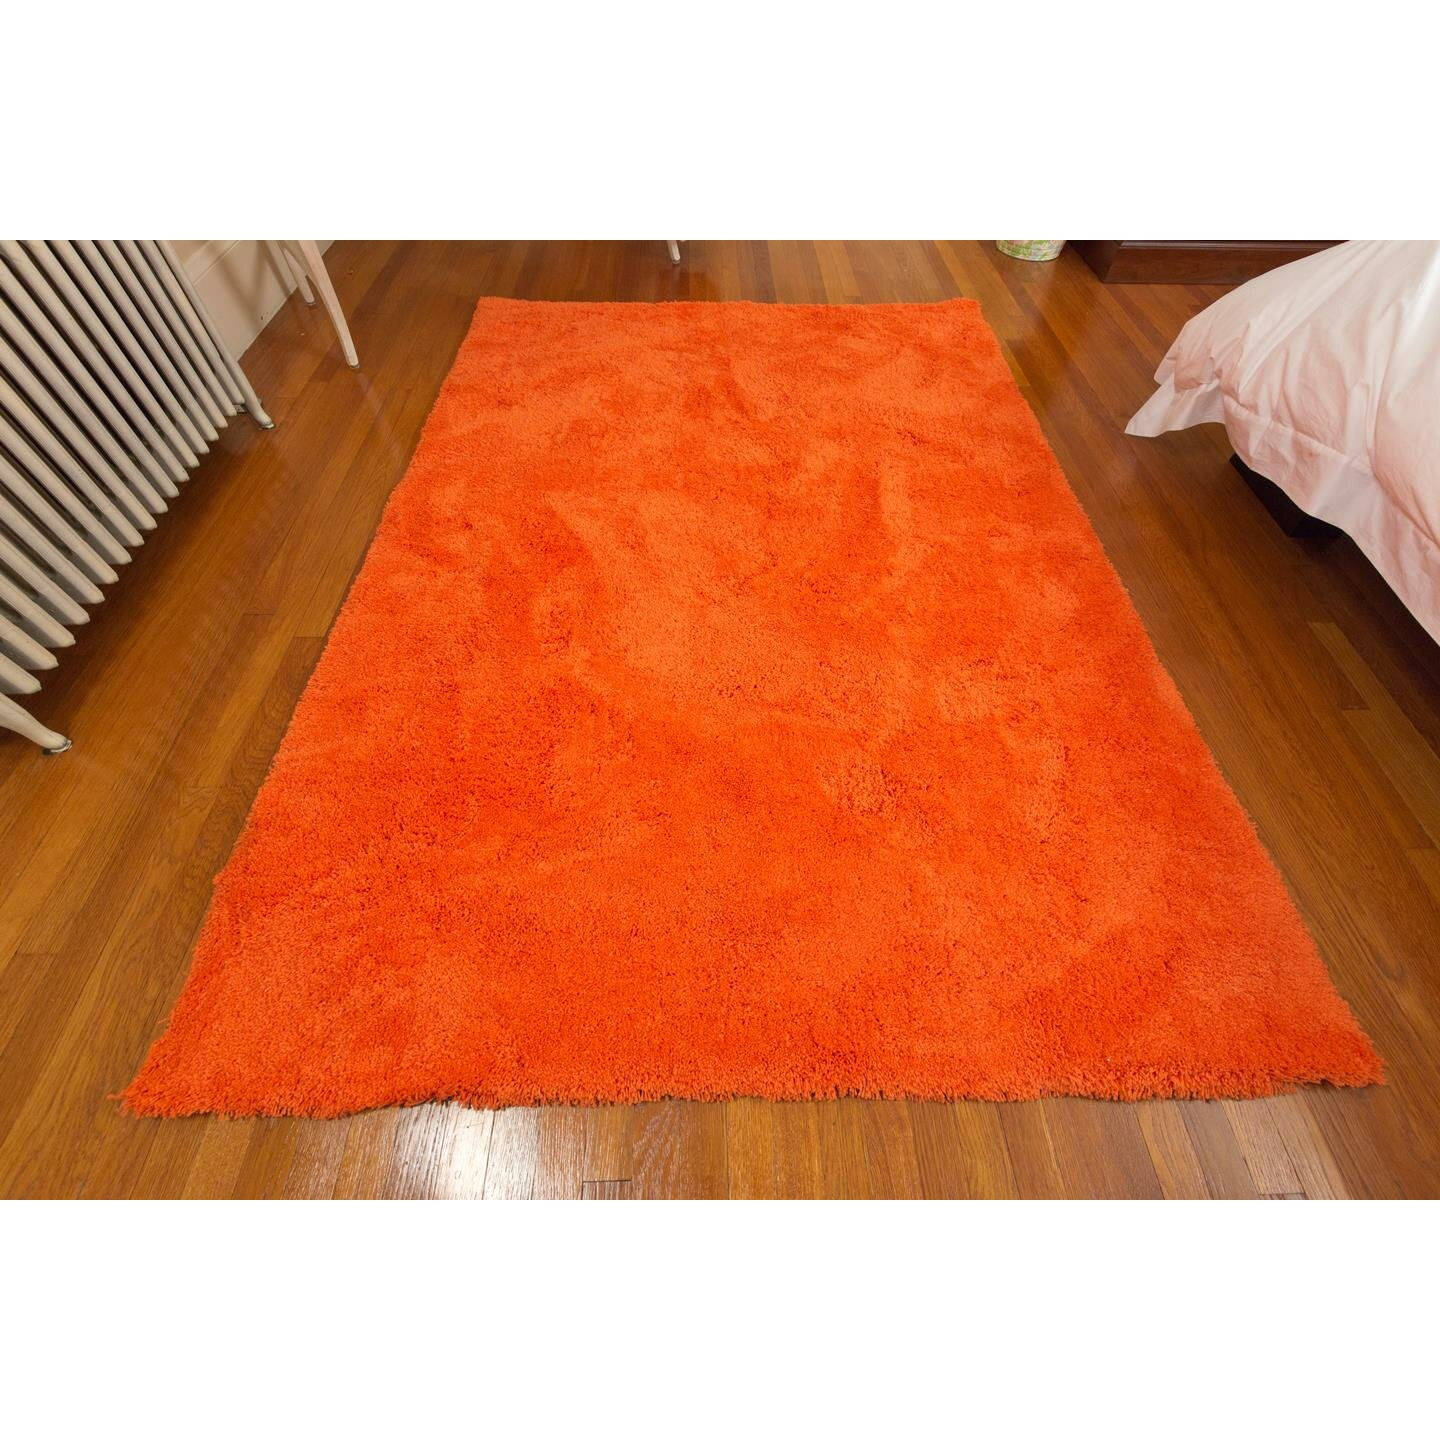 Fadfay Super Soft Modern Shaggy Area Rugs Turquoise Rug: Super Soft Area Rugs